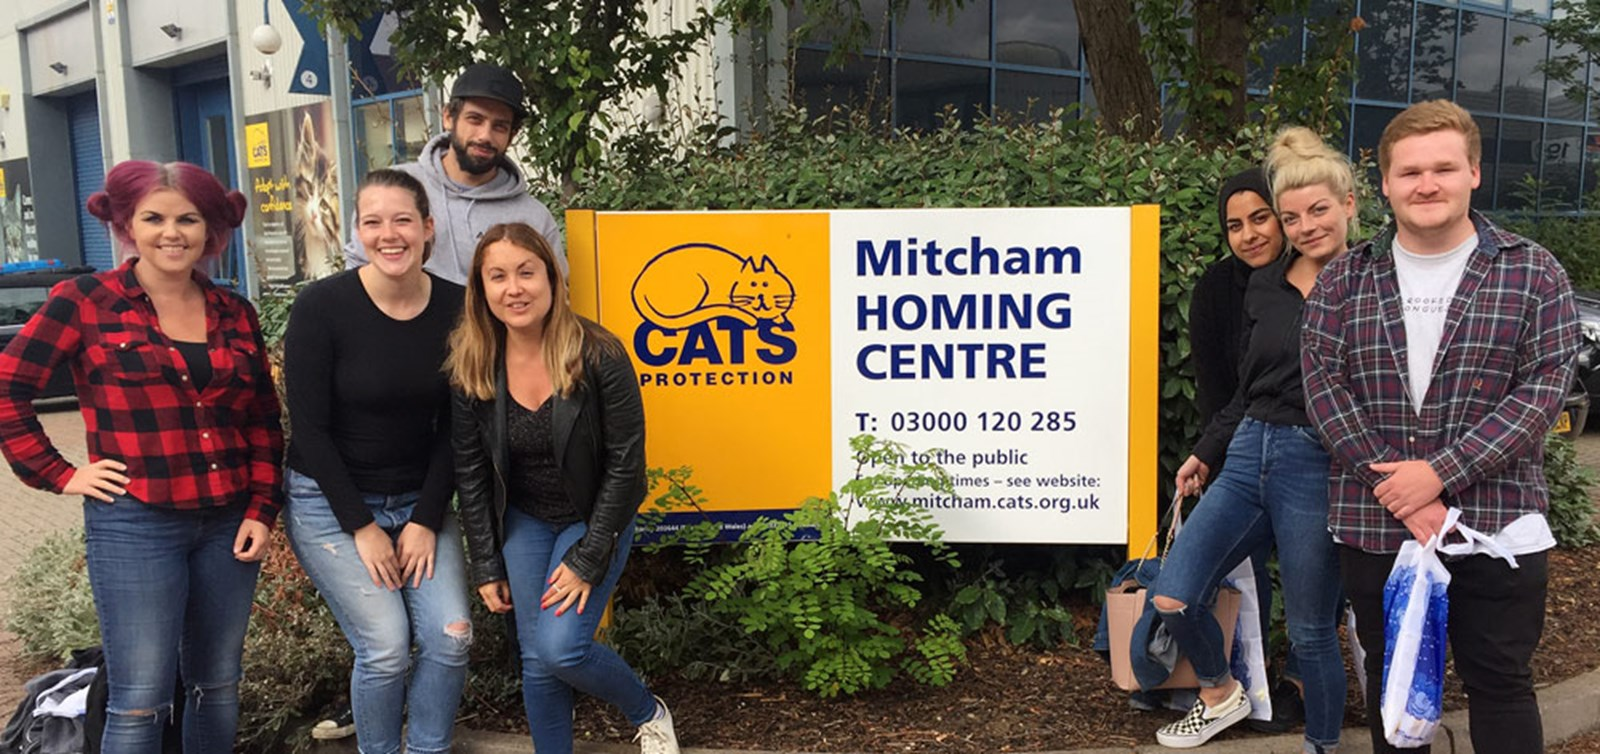 Mitcham Homing Centre